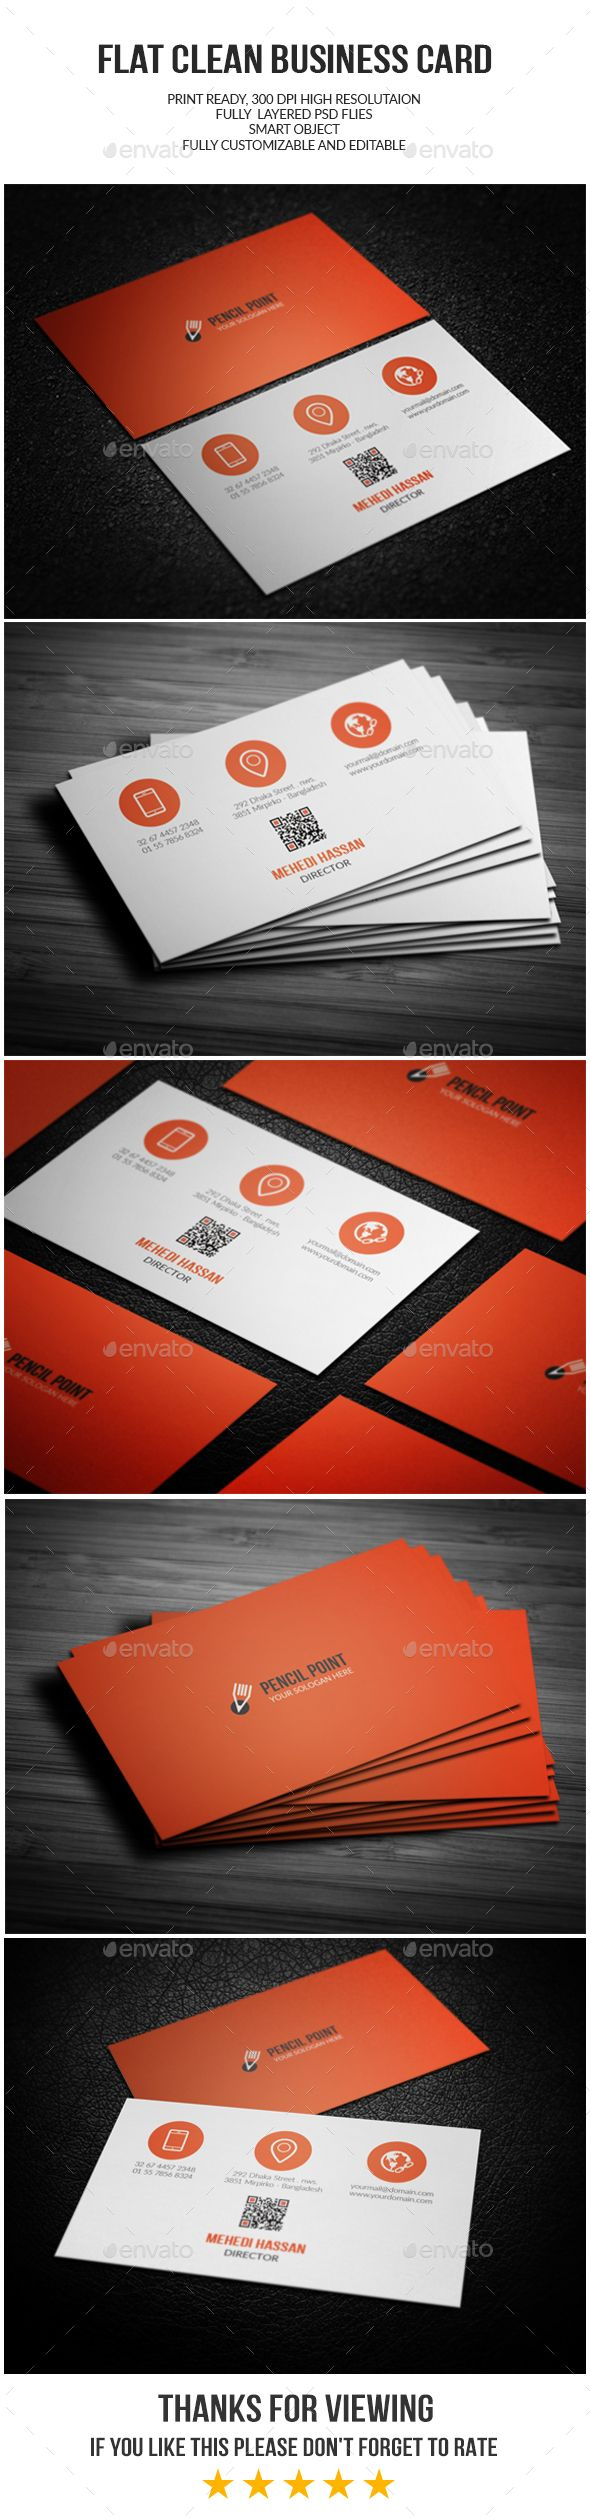 Business Card Templates Overnight Prints Oukasinfo - Overnight prints business card template